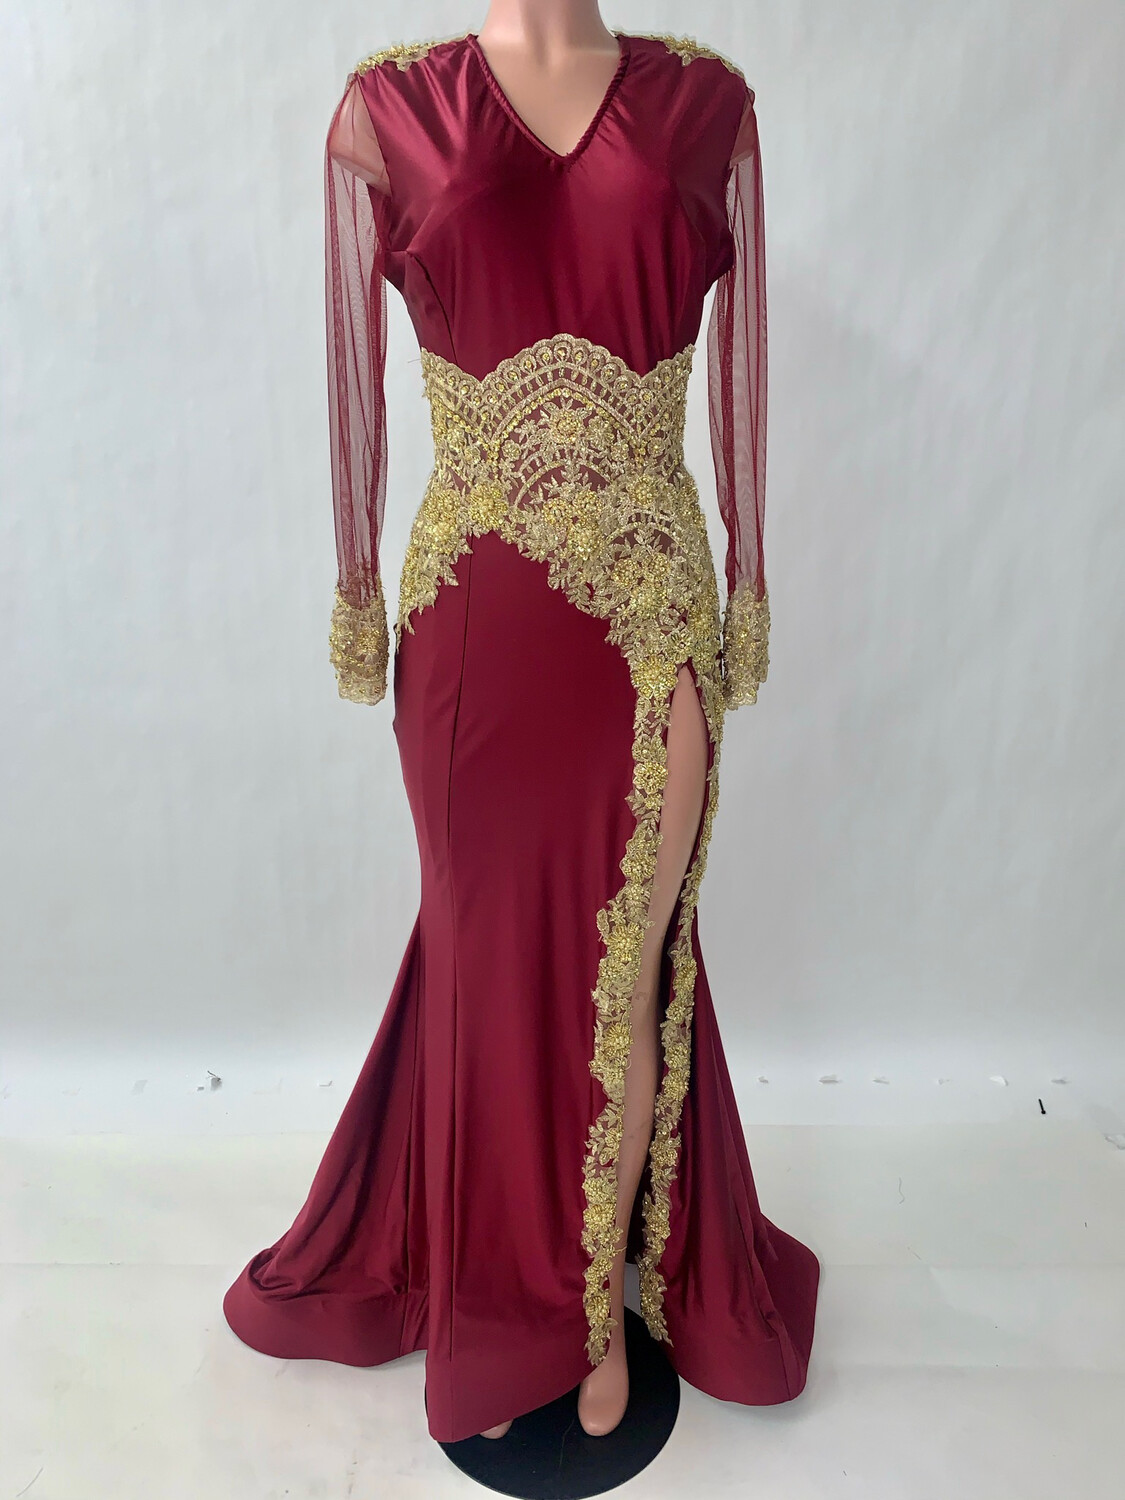 Burgundy And Gold Lace Sheath Gown